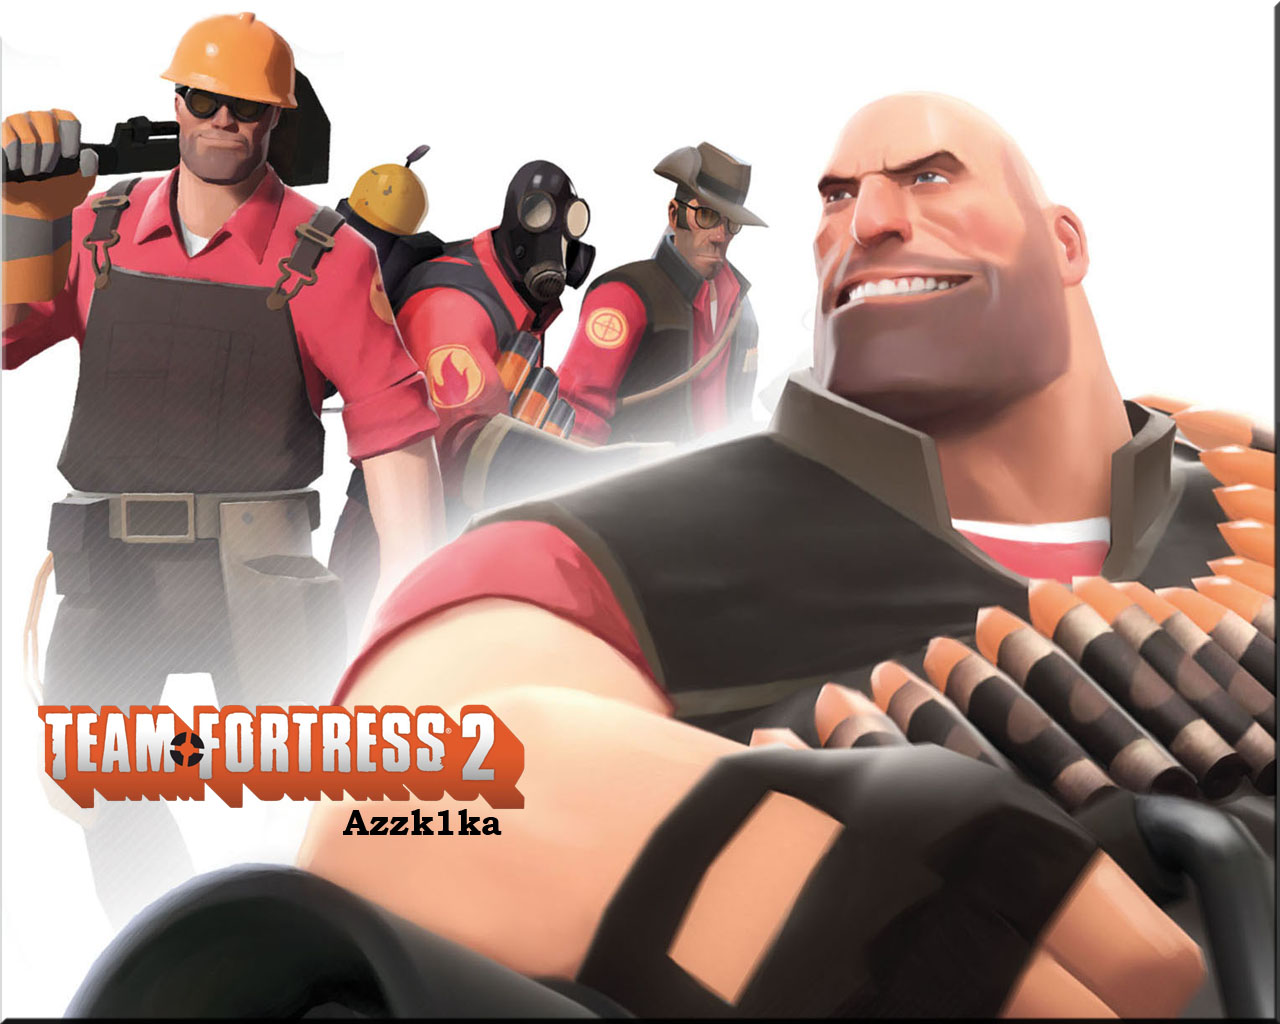 Video Games Team Fortress 2 Facebook Covers